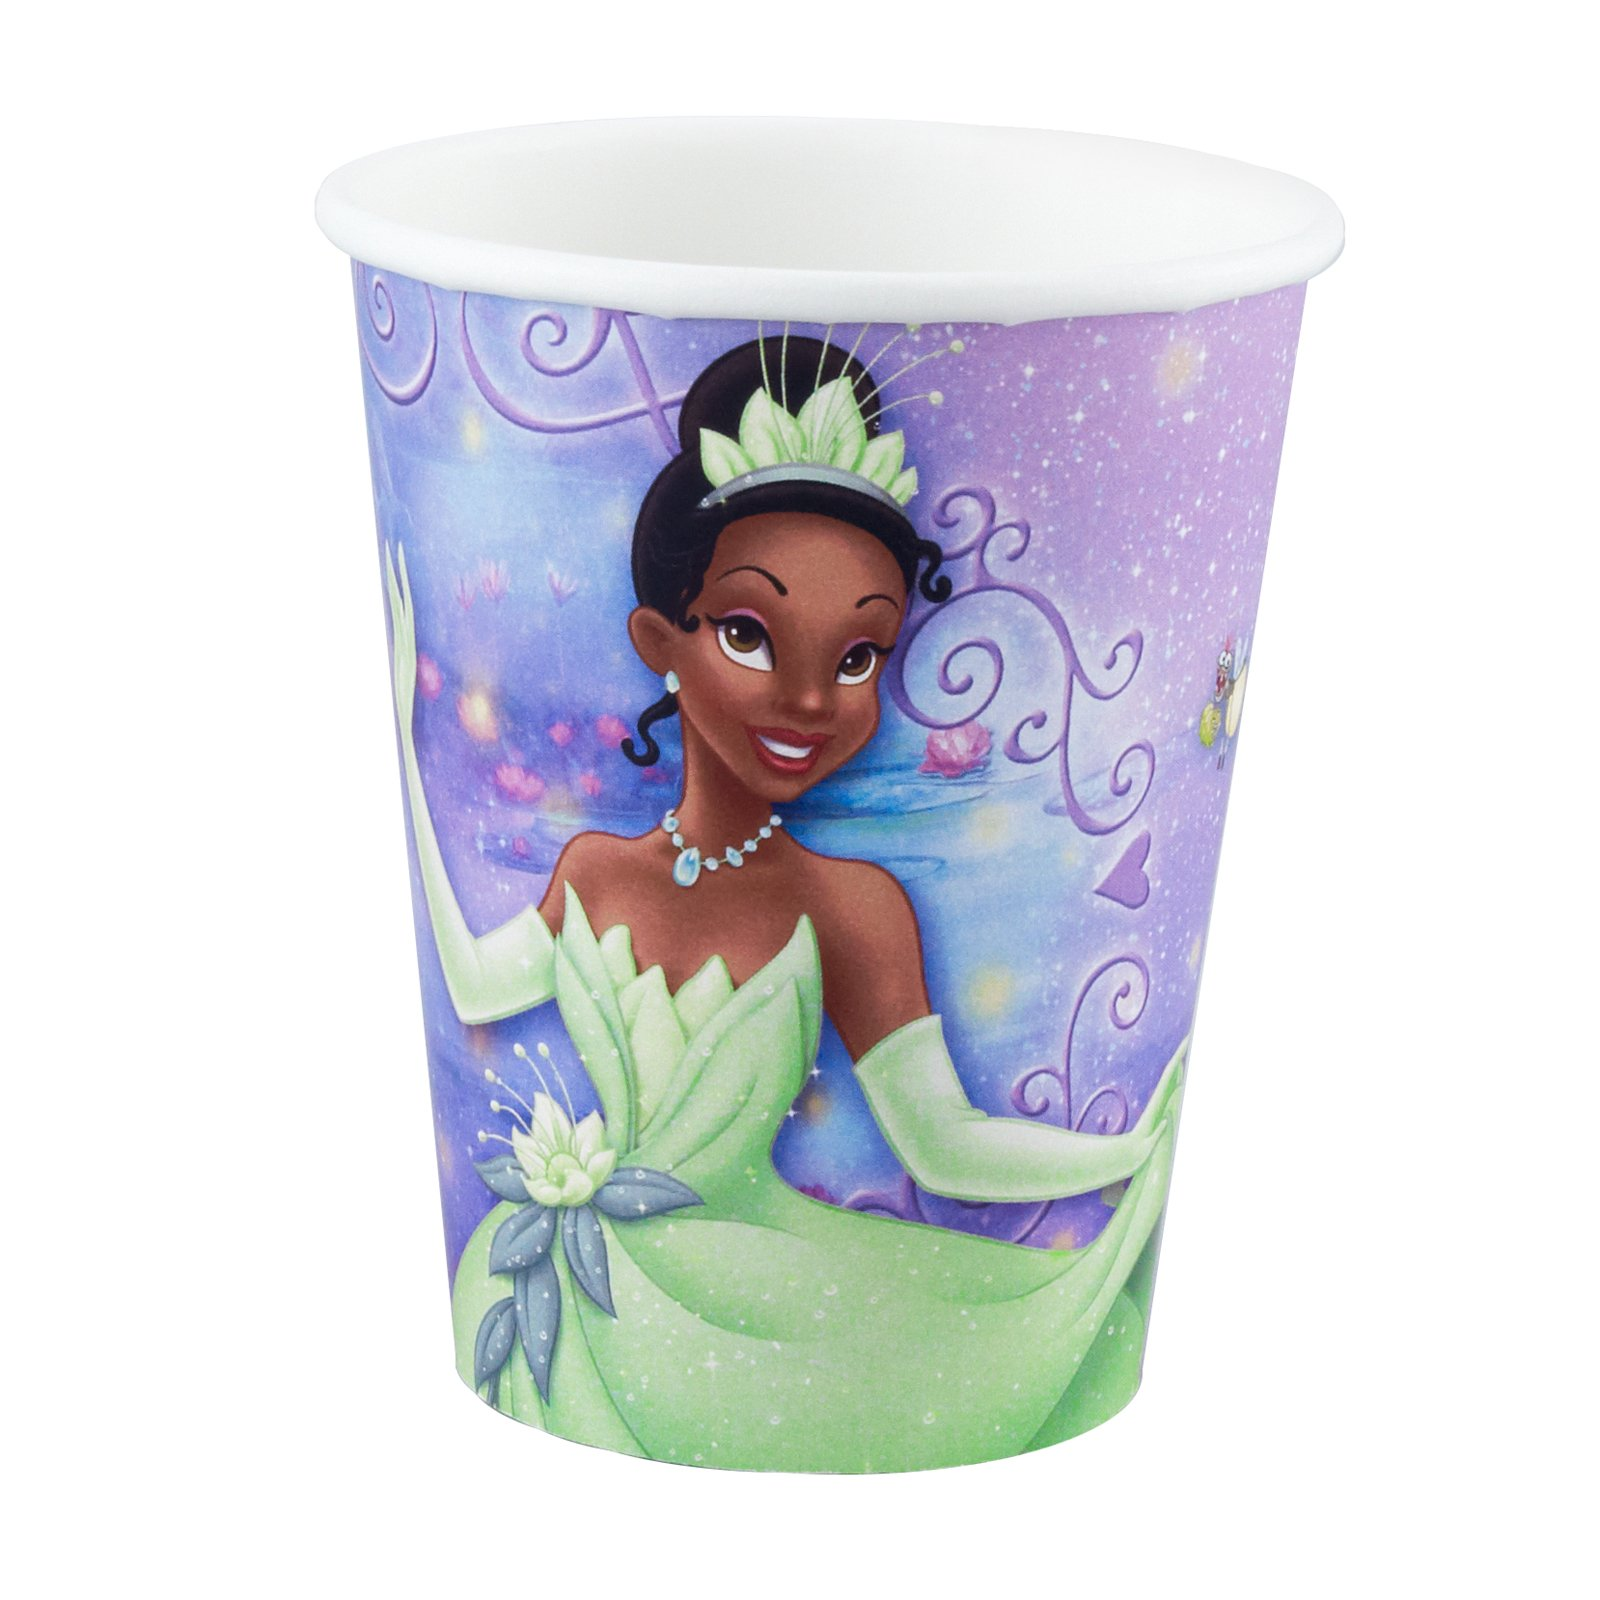 Disney Princess & the Frog 9 0z Cups